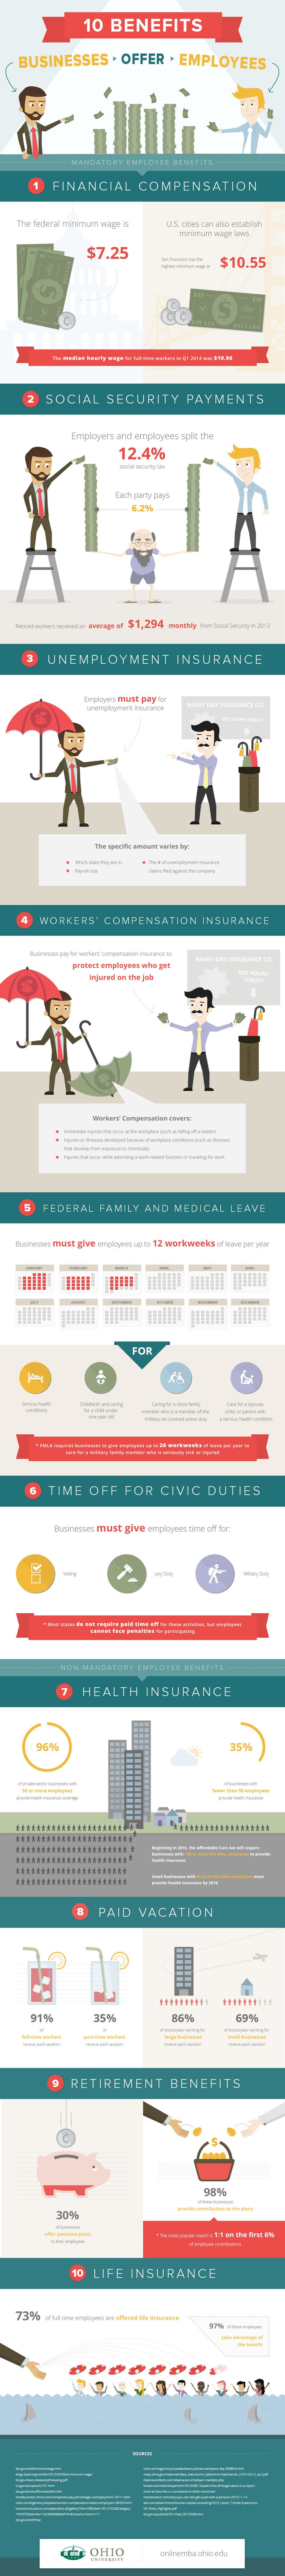 6 Benefits Your Employer Is Legally Required To Offer